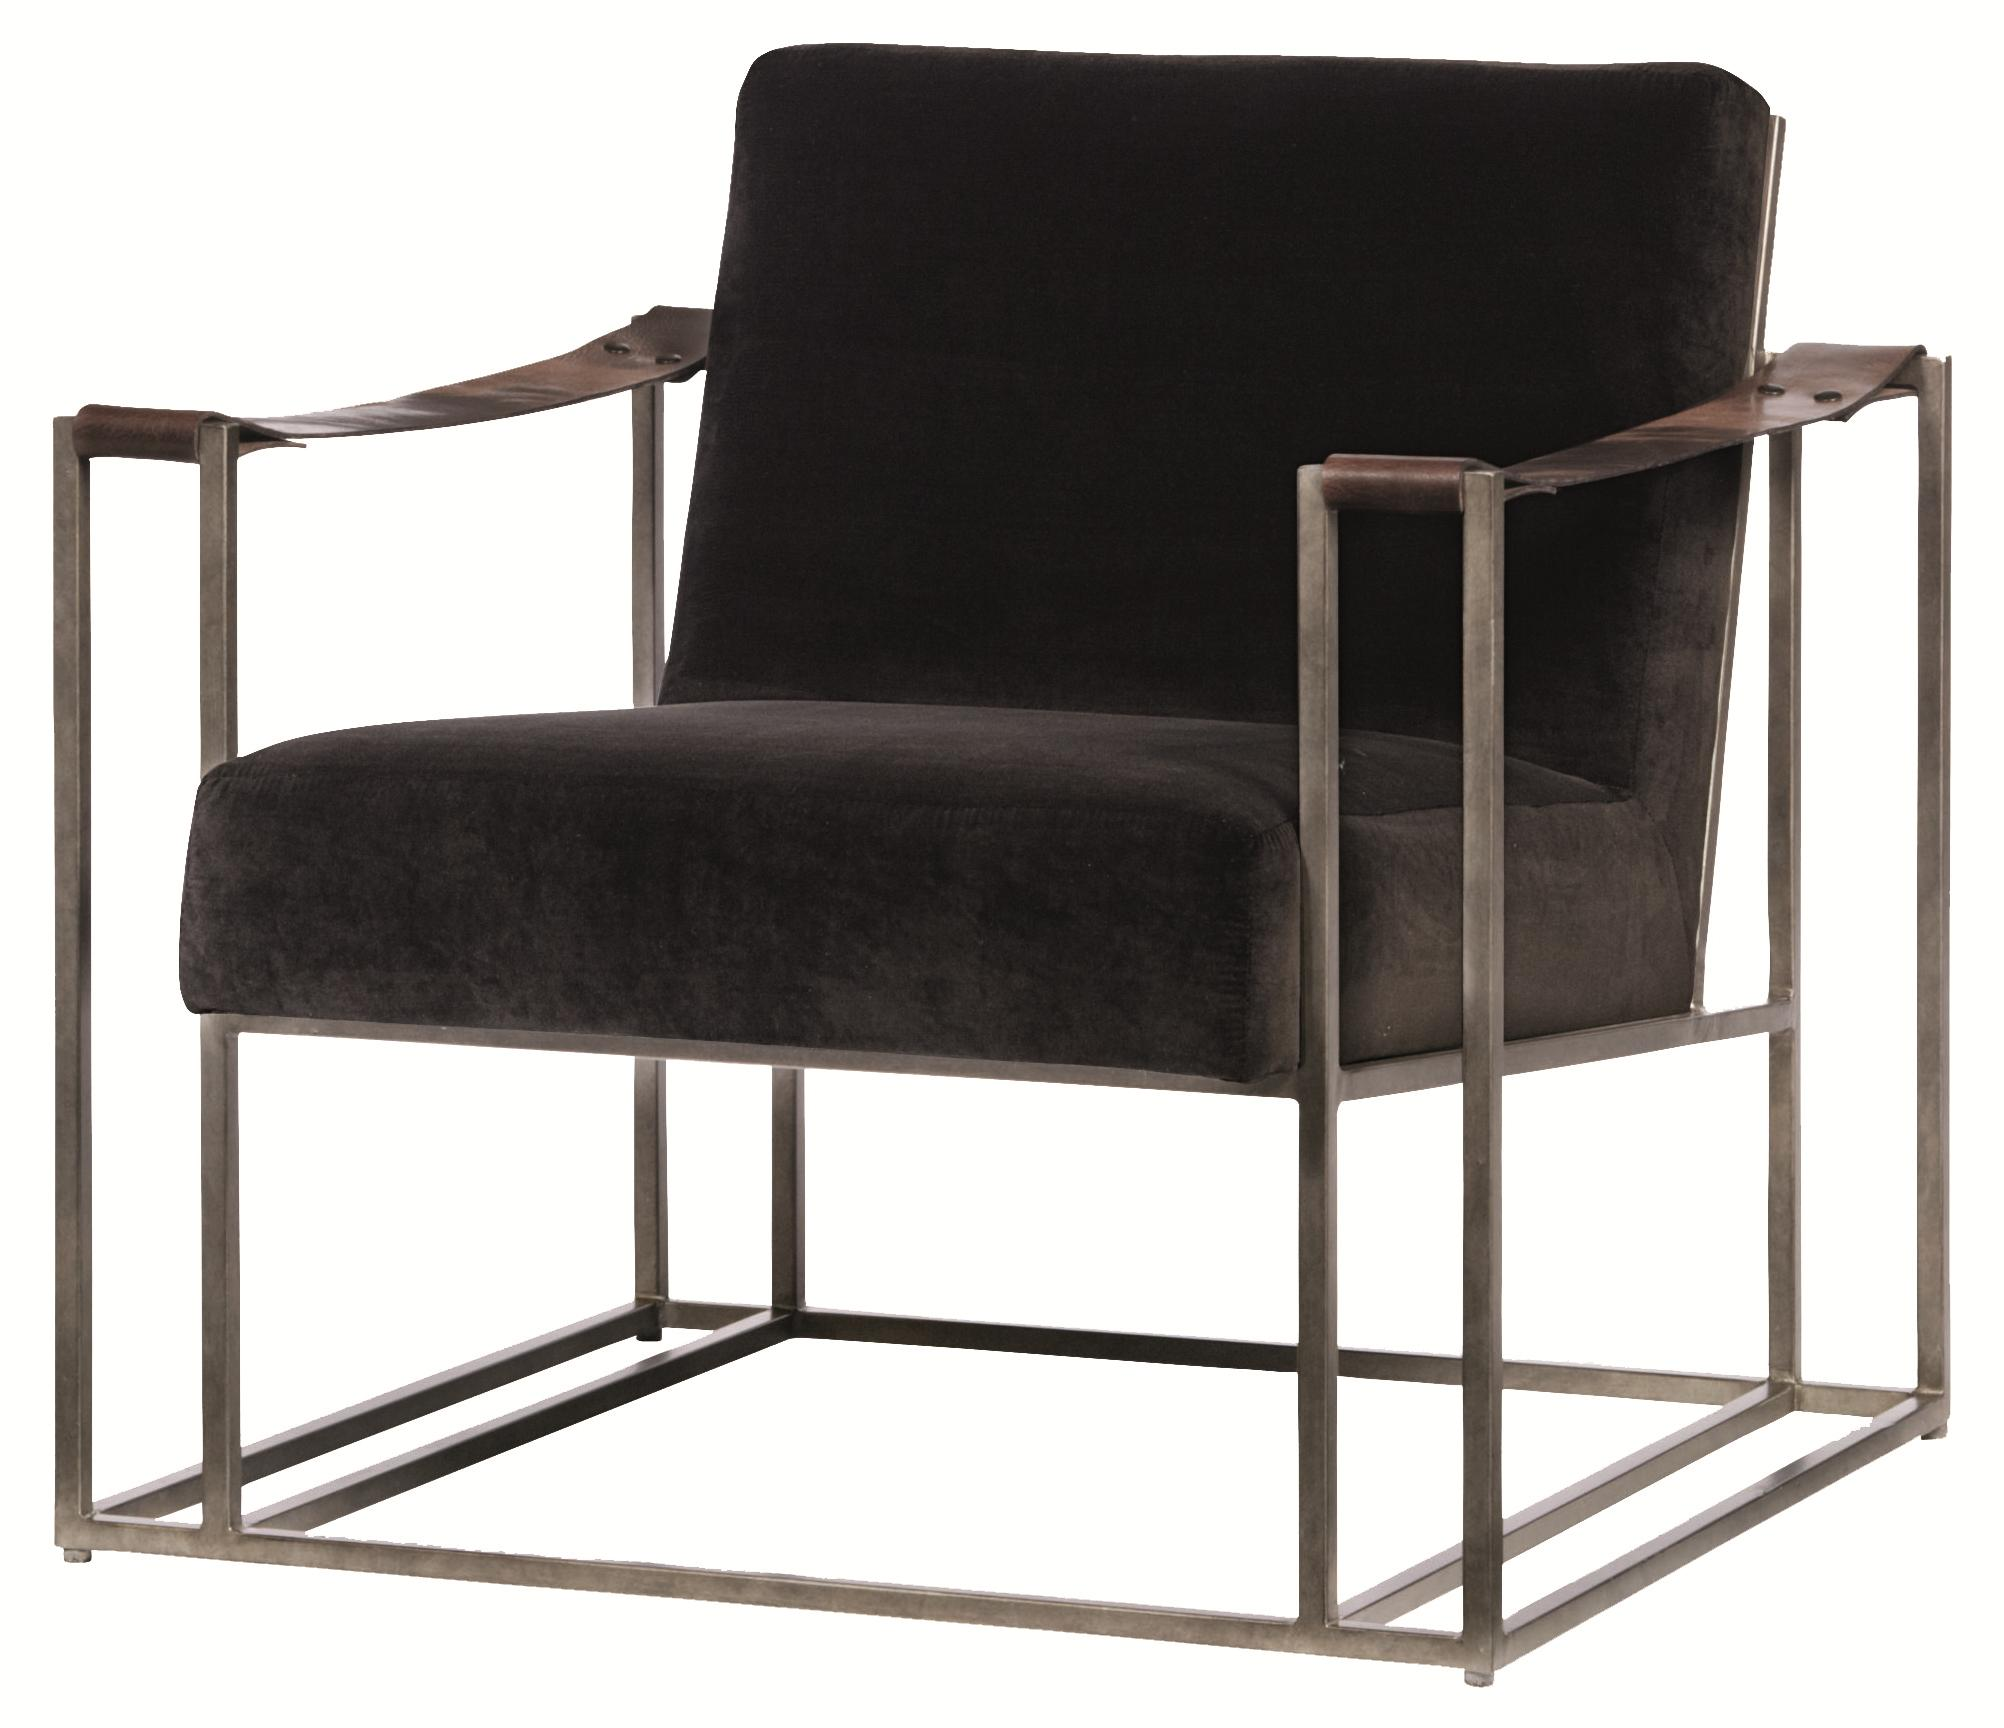 Bernhardt dekker b3212 high end accent chair with modern - Modern upholstered living room chairs ...